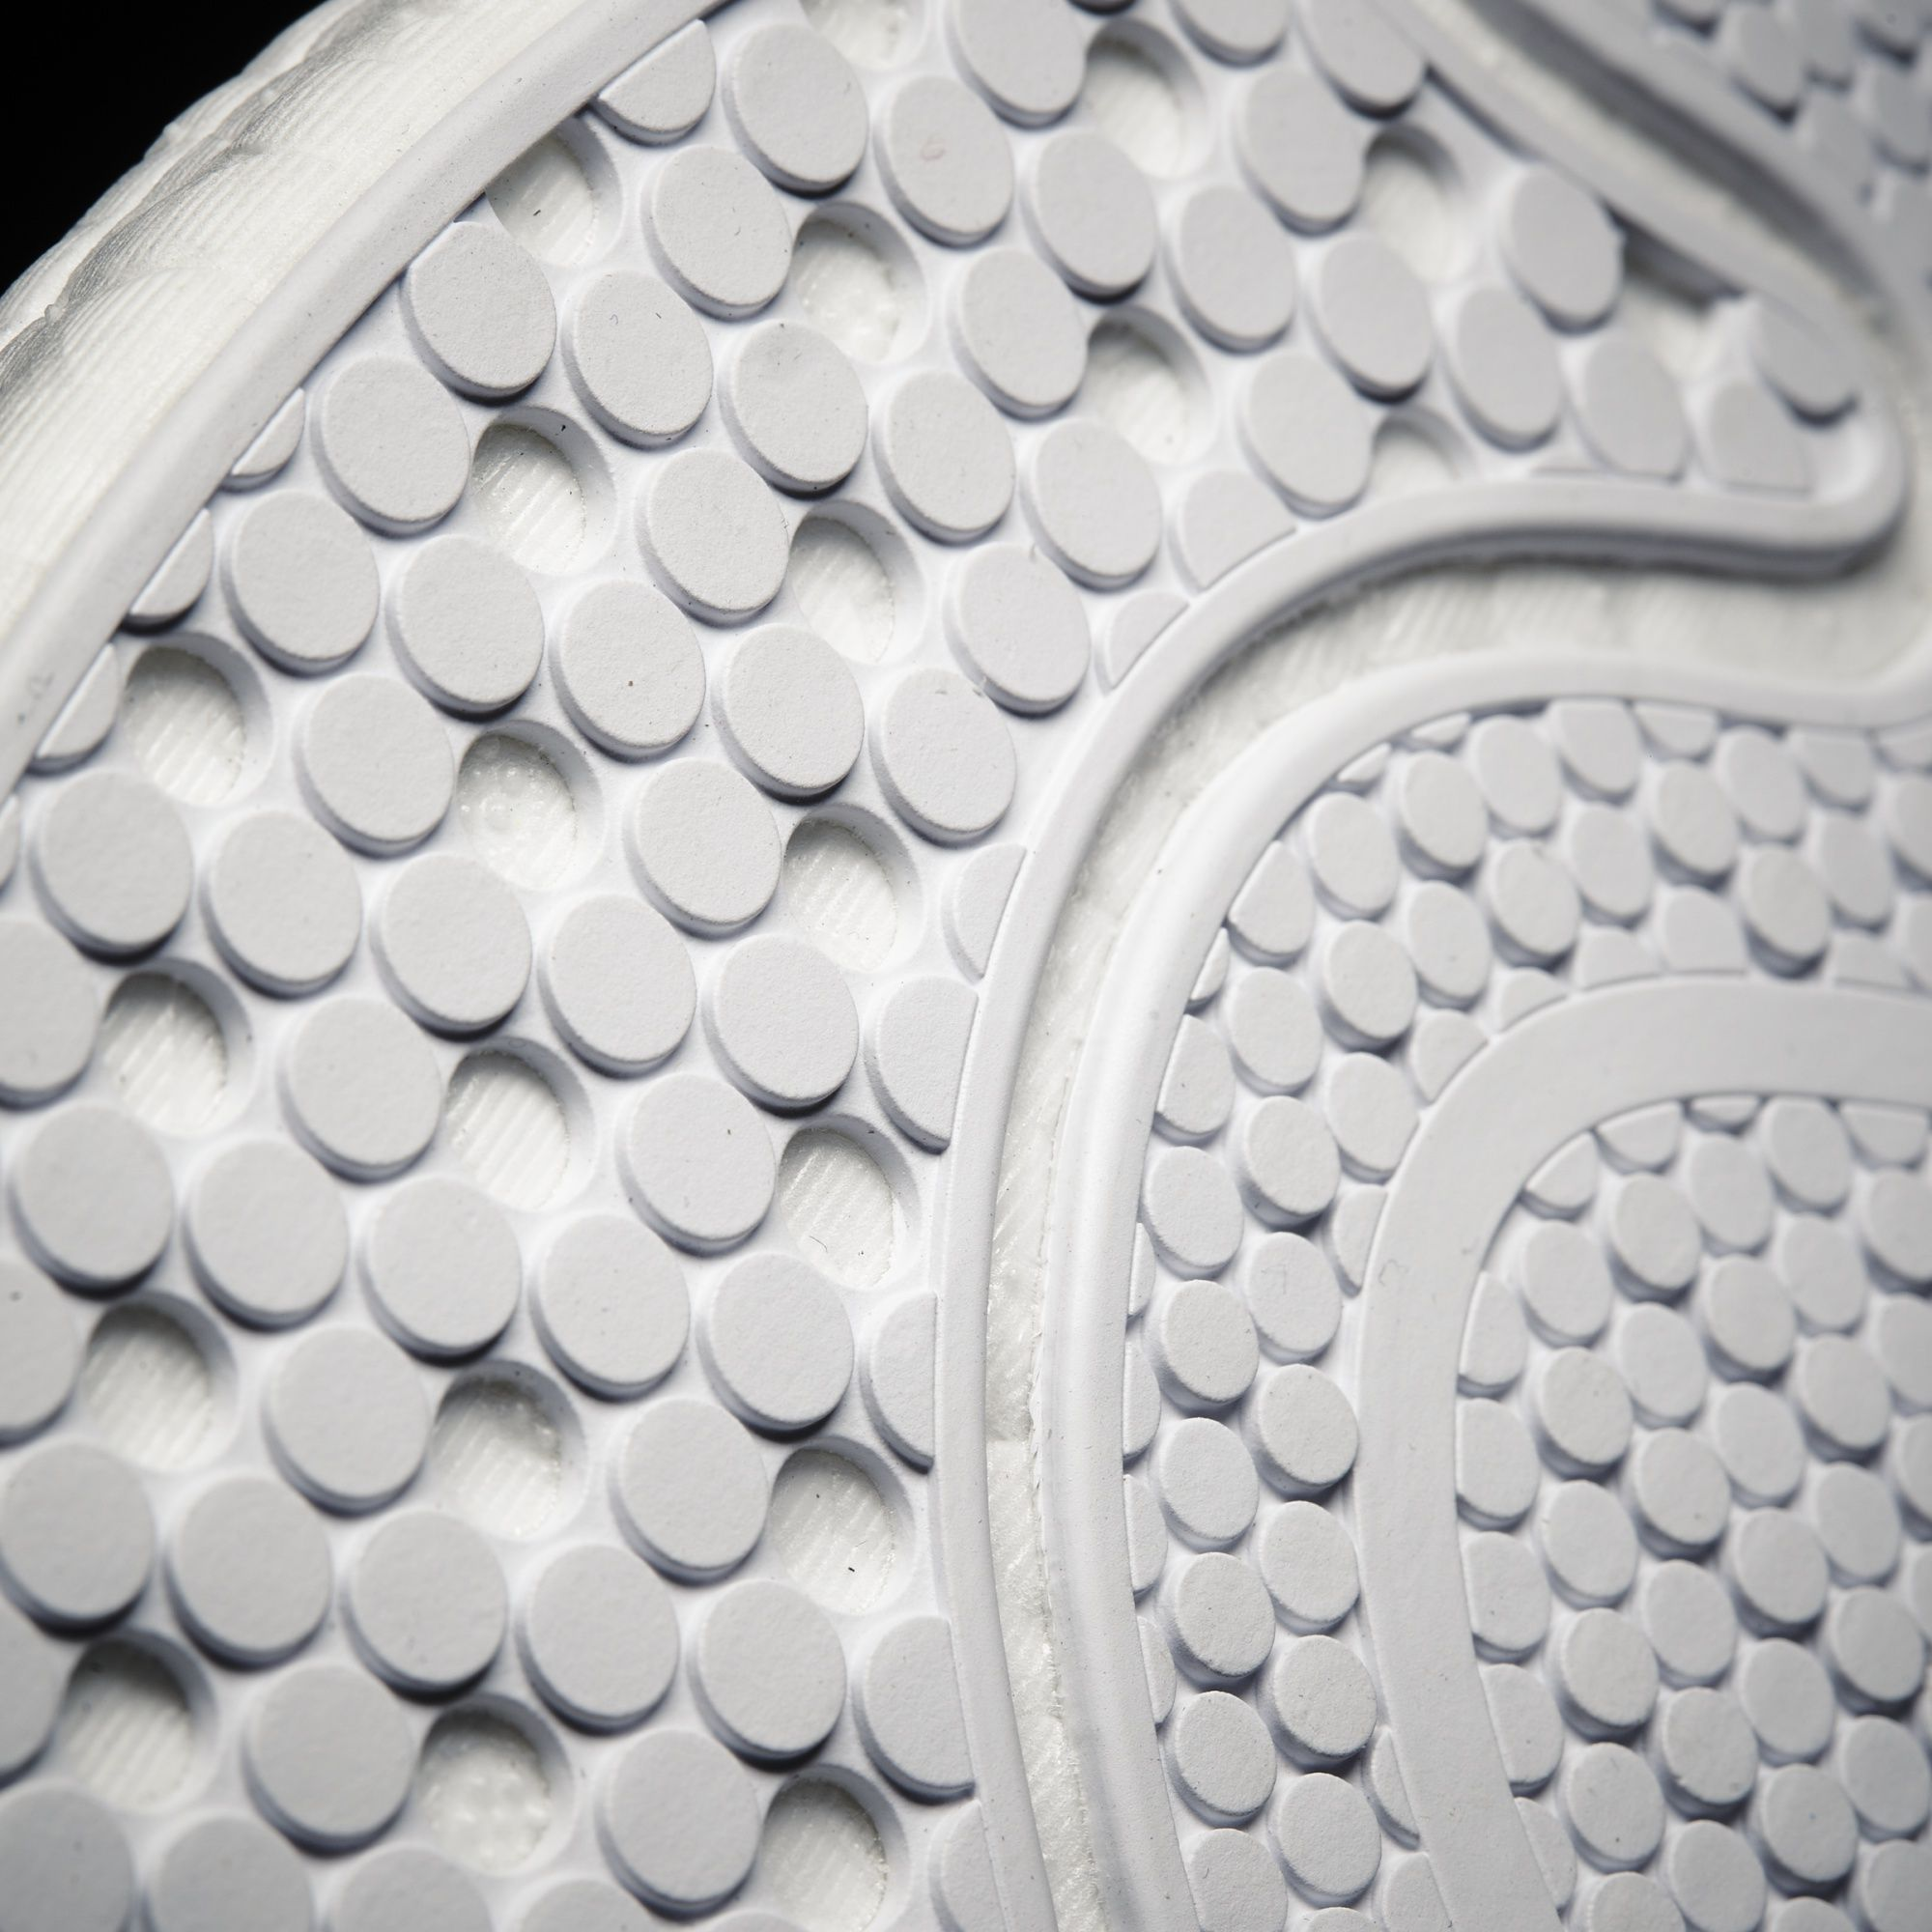 Adidas Stan Smith Boost BB0008 Sole Detail